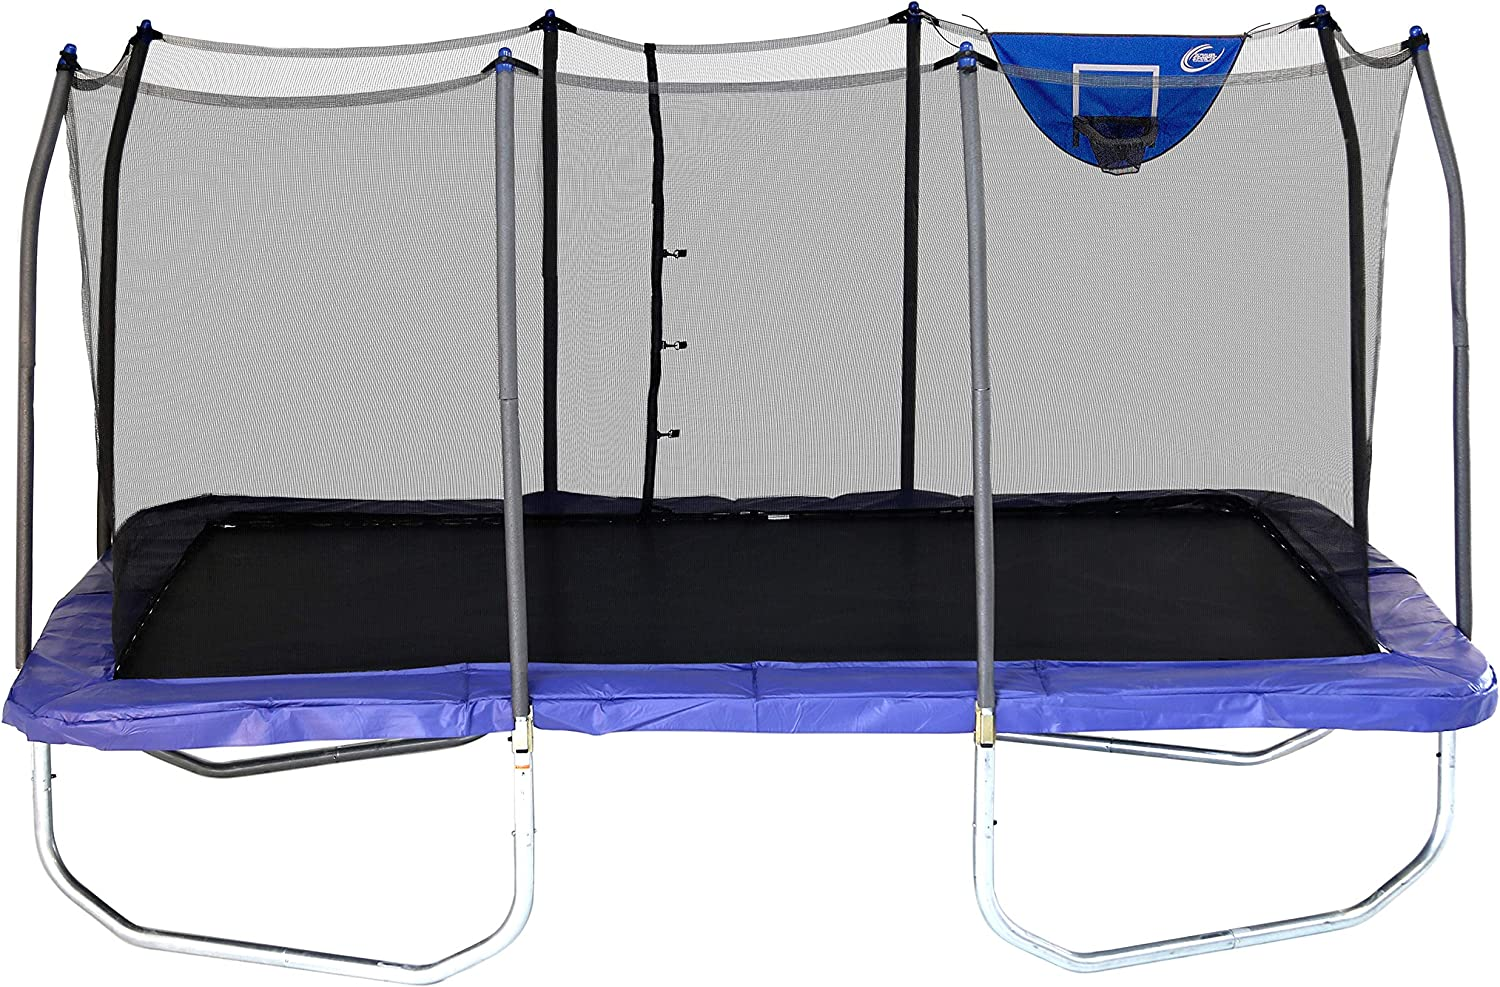 Skywalker Trampolines - Rectangle Jump-N-Dunk Trampoline with Enclosure